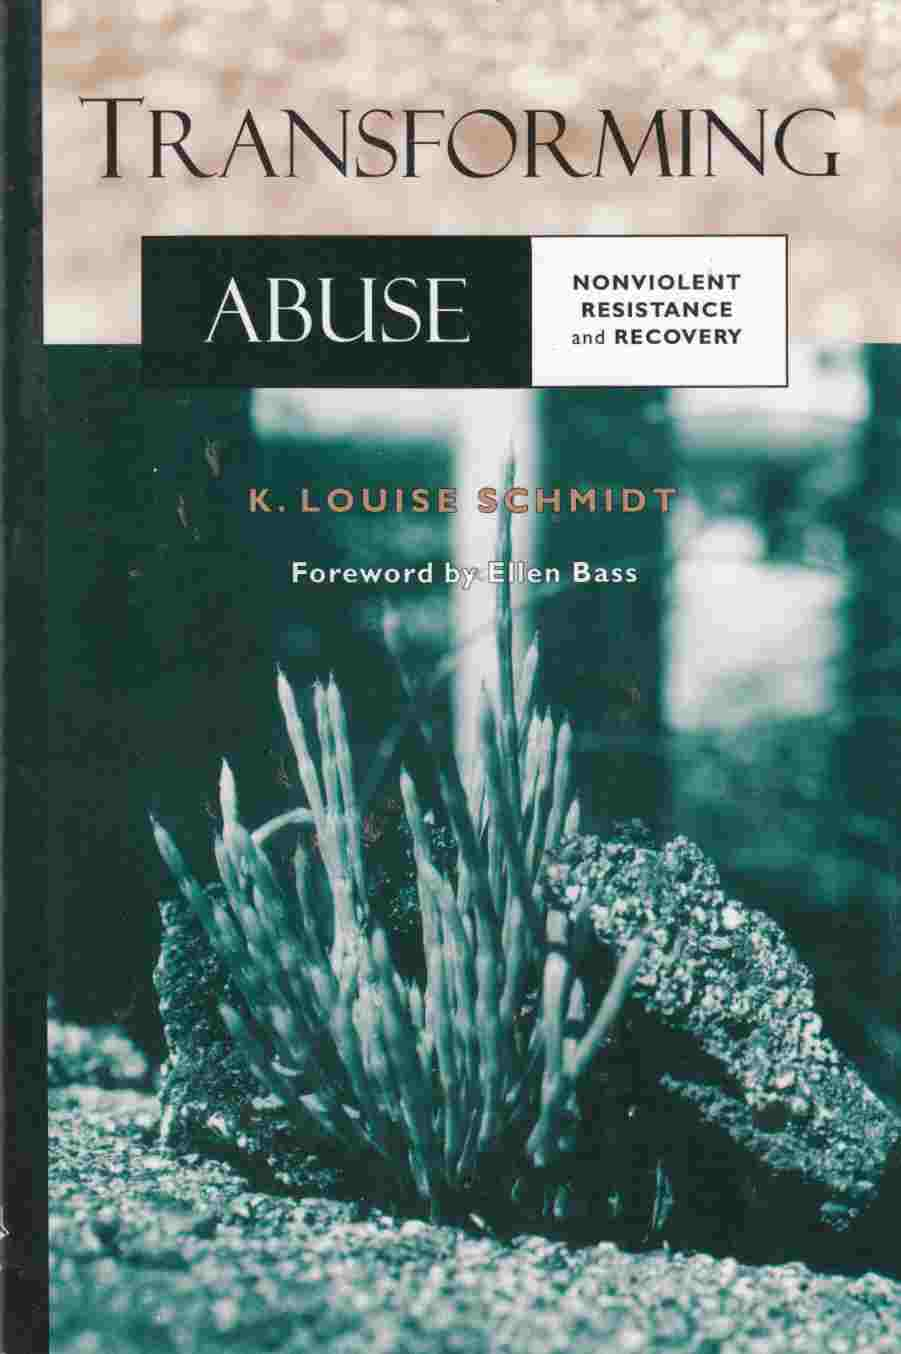 Image for Transforming Abuse: Nonviolent Resistance and Recovery